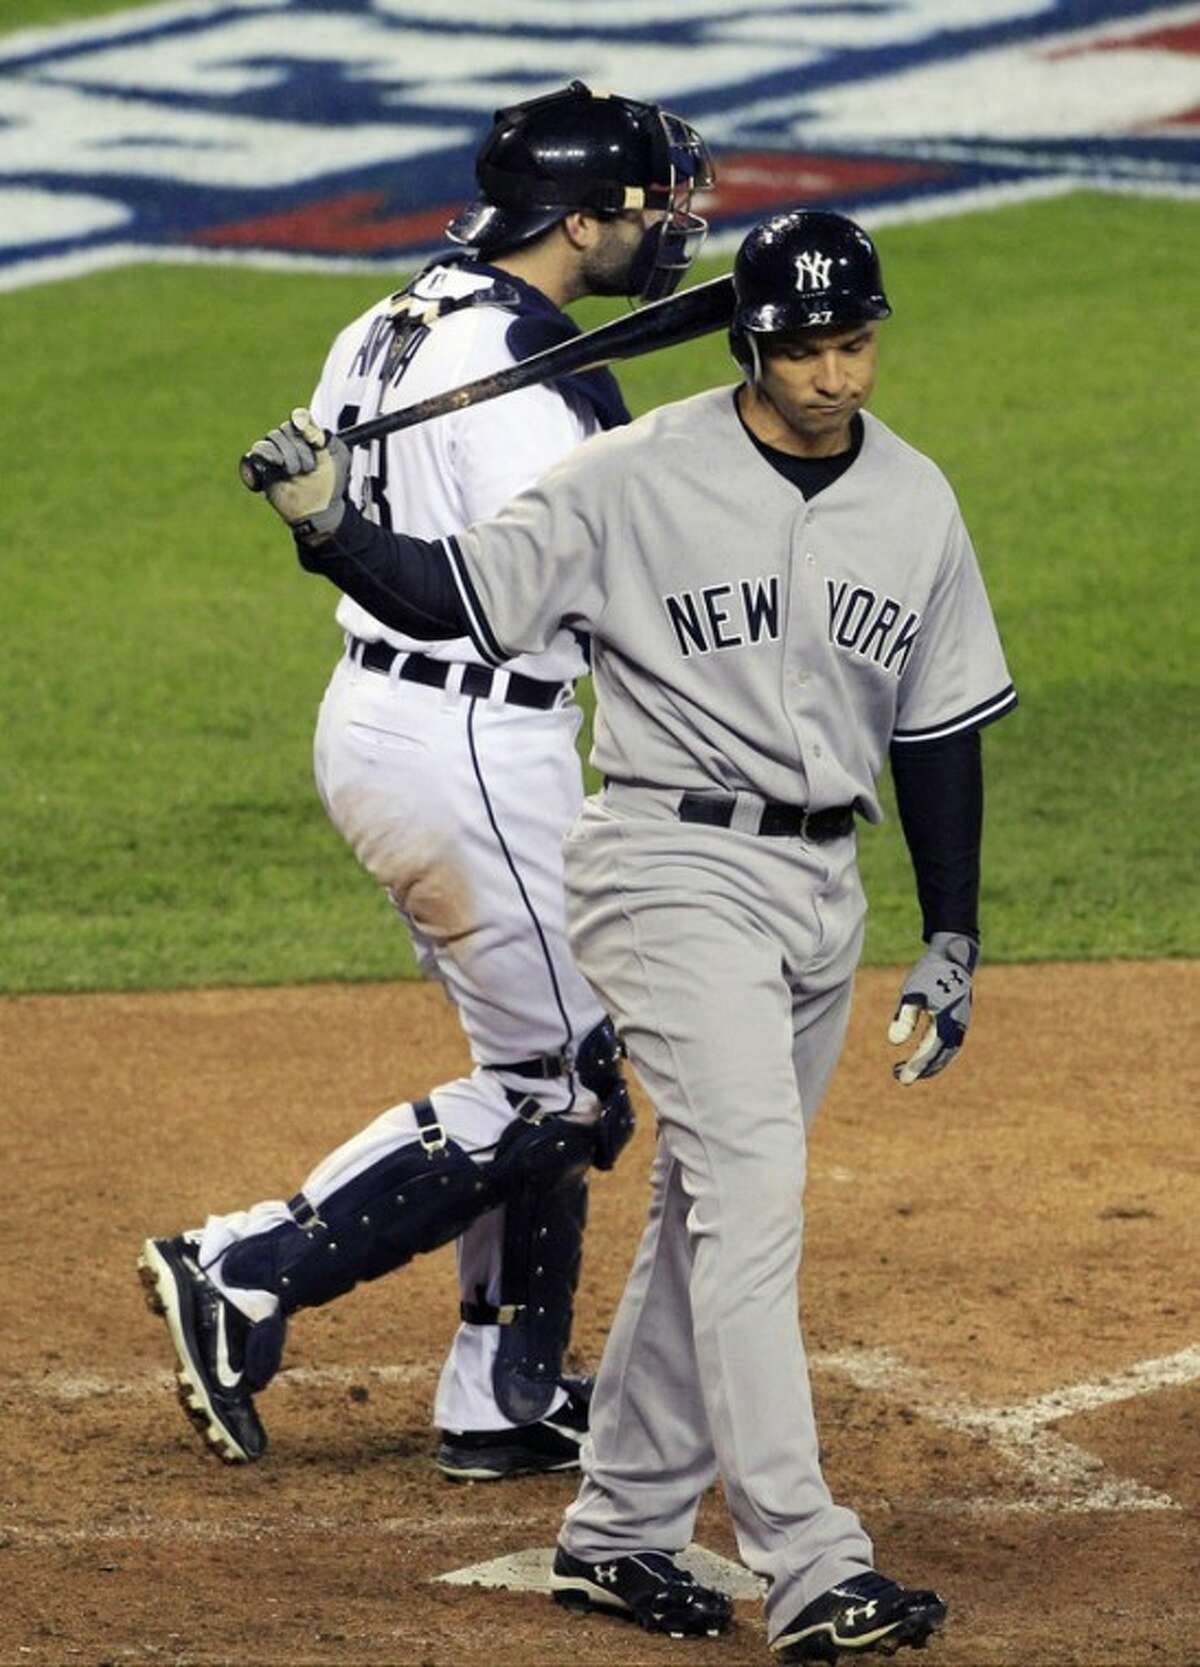 New York Yankees' Raul Ibanez reacts after striking out ending the game as Detroit Tigers' Alex Avila leaves home plate at Game 3 of the American League championship series Tuesday, Oct. 16, 2012, in Detroit. (AP Photo/Carlos Osorio)